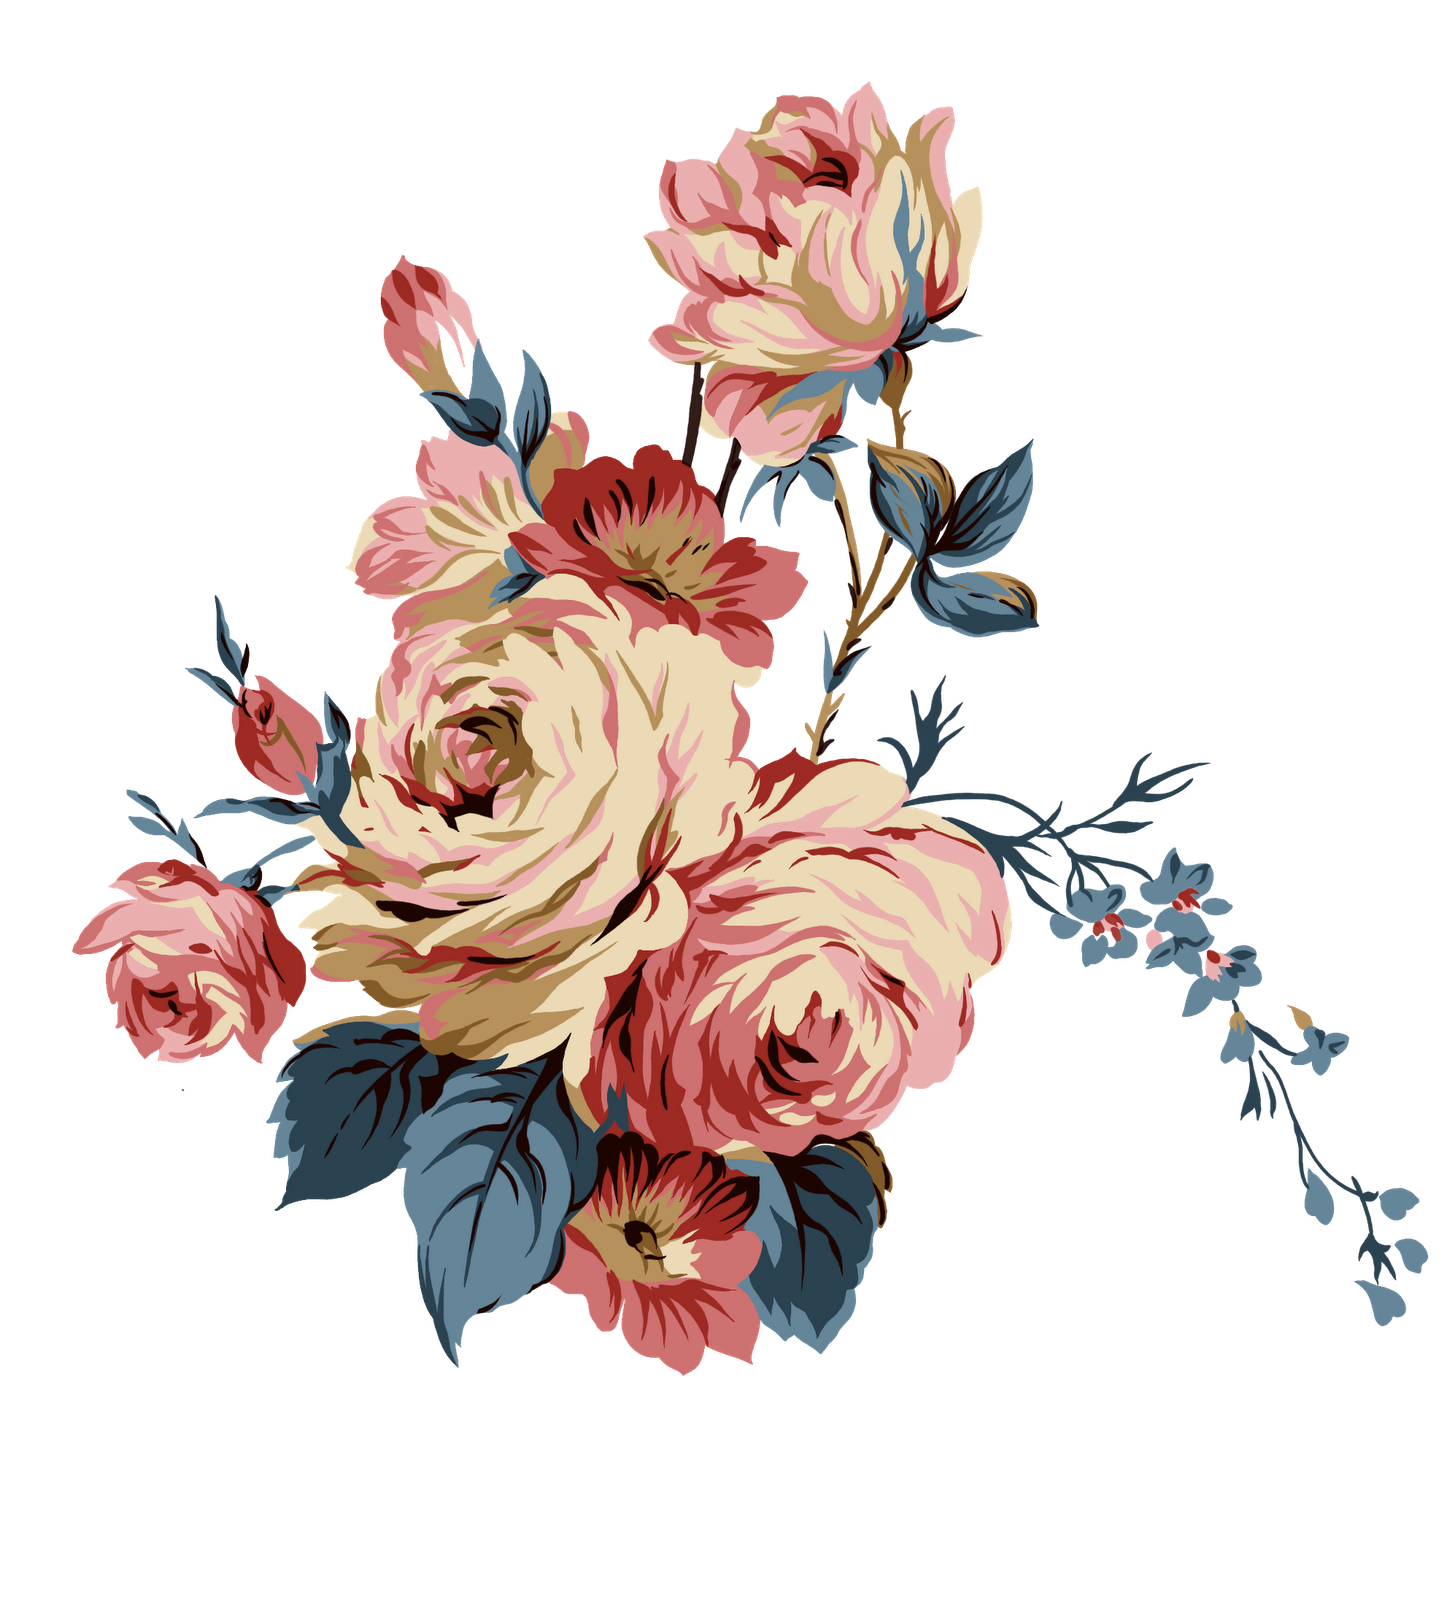 Rose Cluster Png Transparency Overlay For Personal Use Flower Painting Flower Art Vintage Flowers